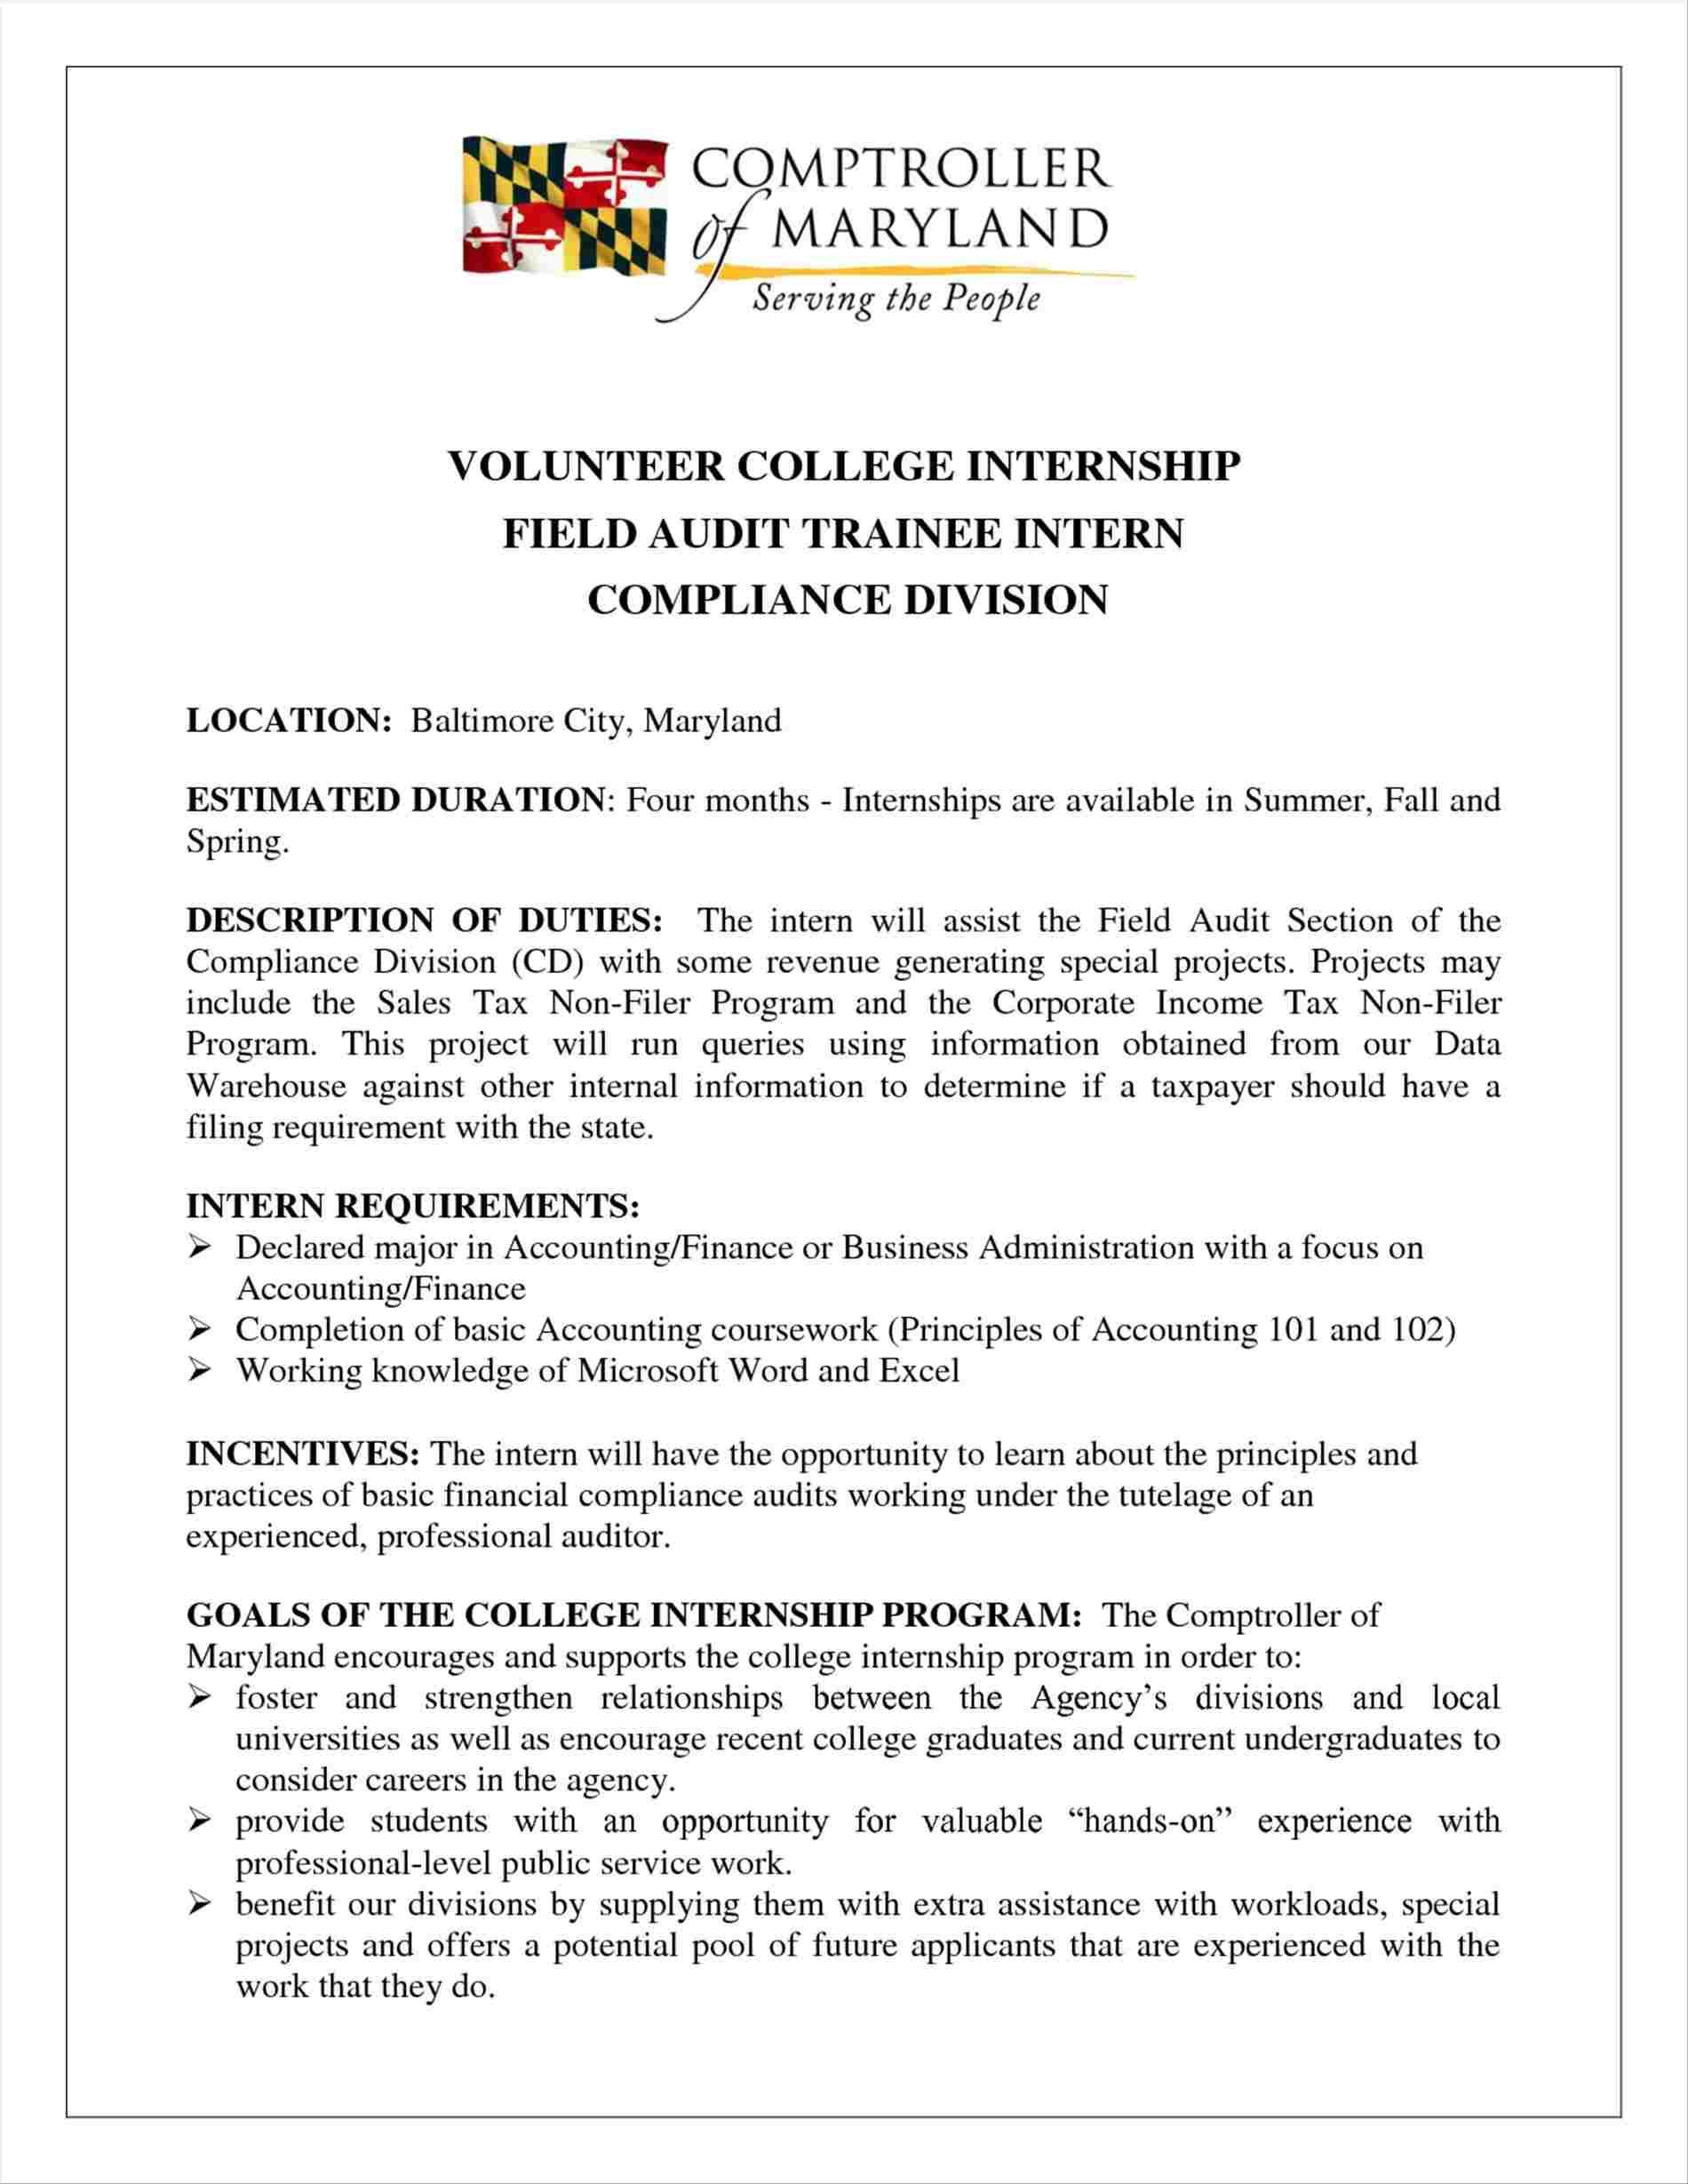 senior auditor cover letter Cover Letter | Tresume ...